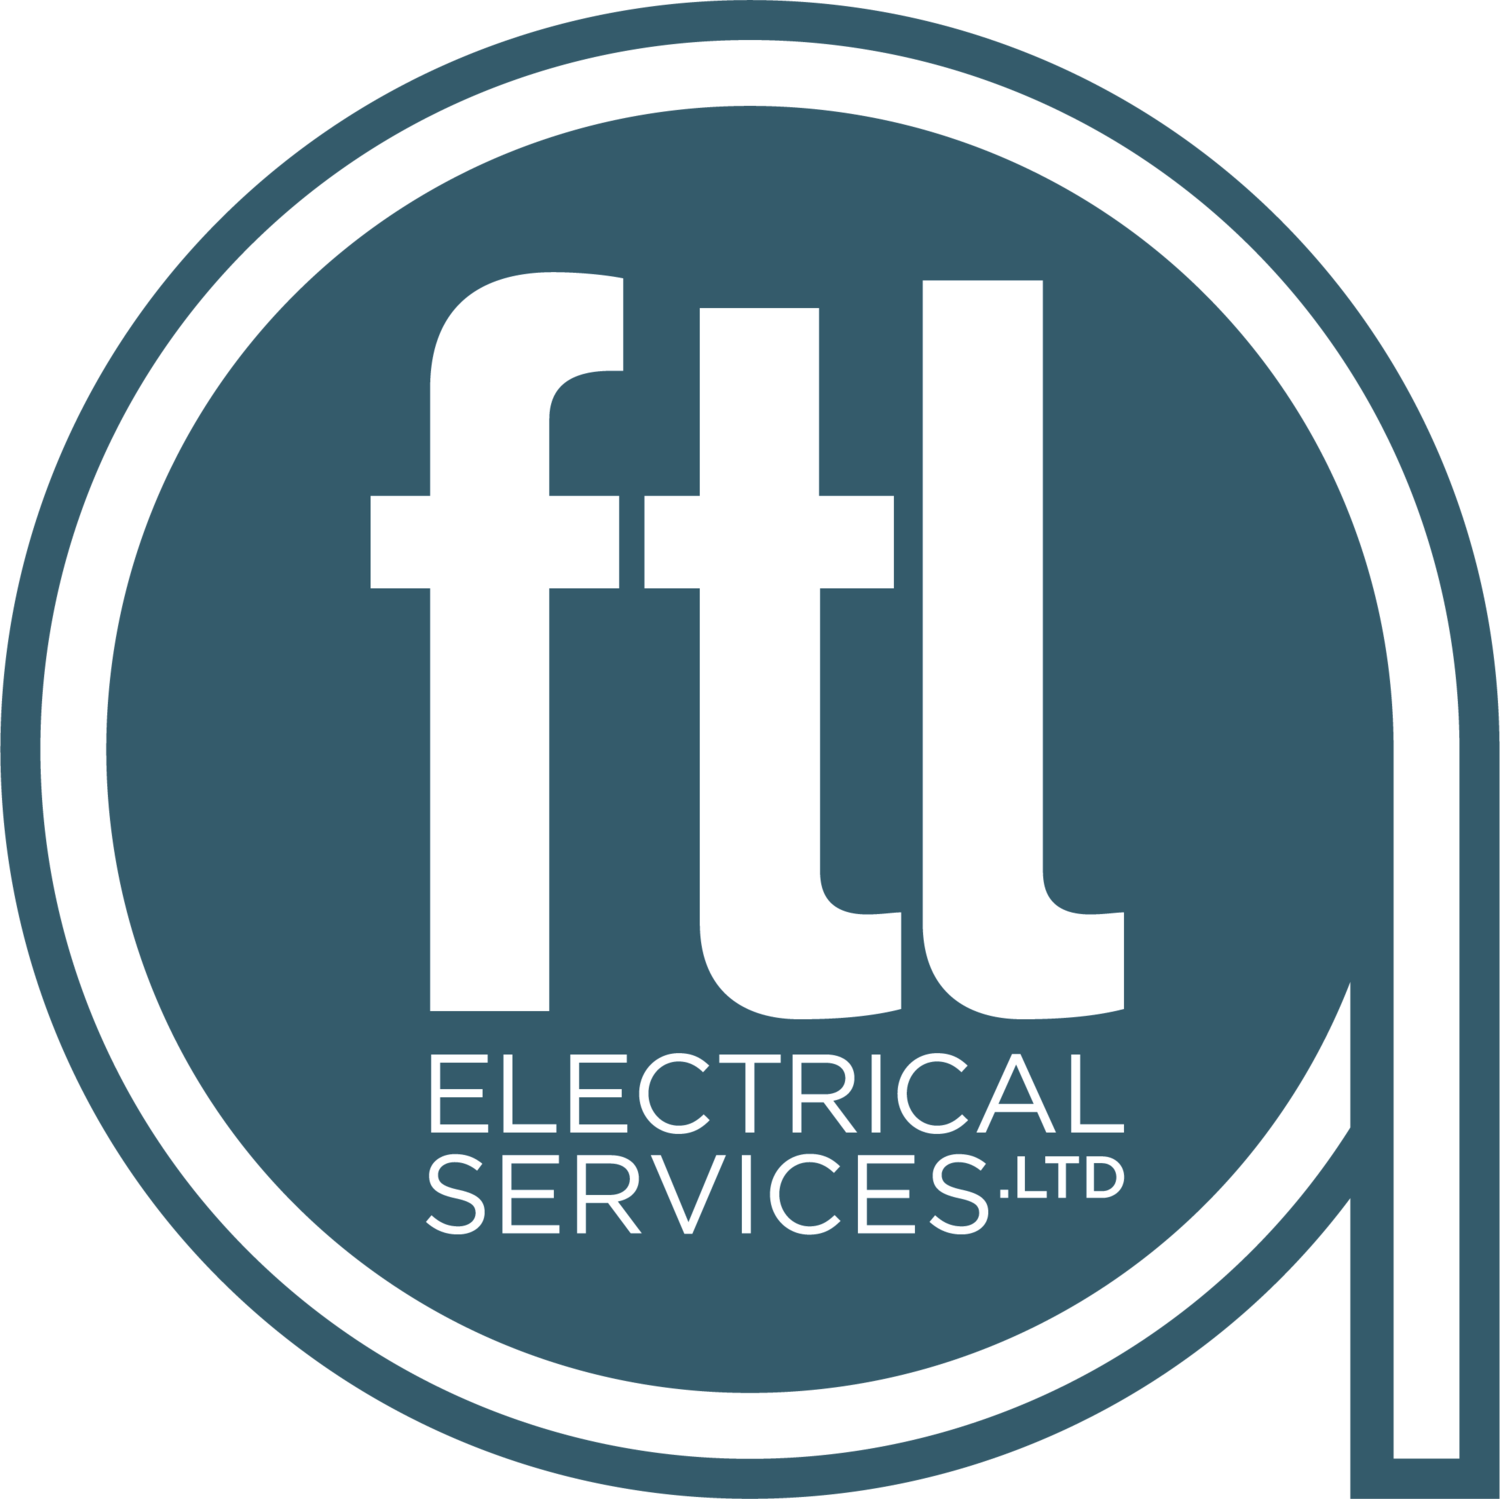 FTL Electrical Services